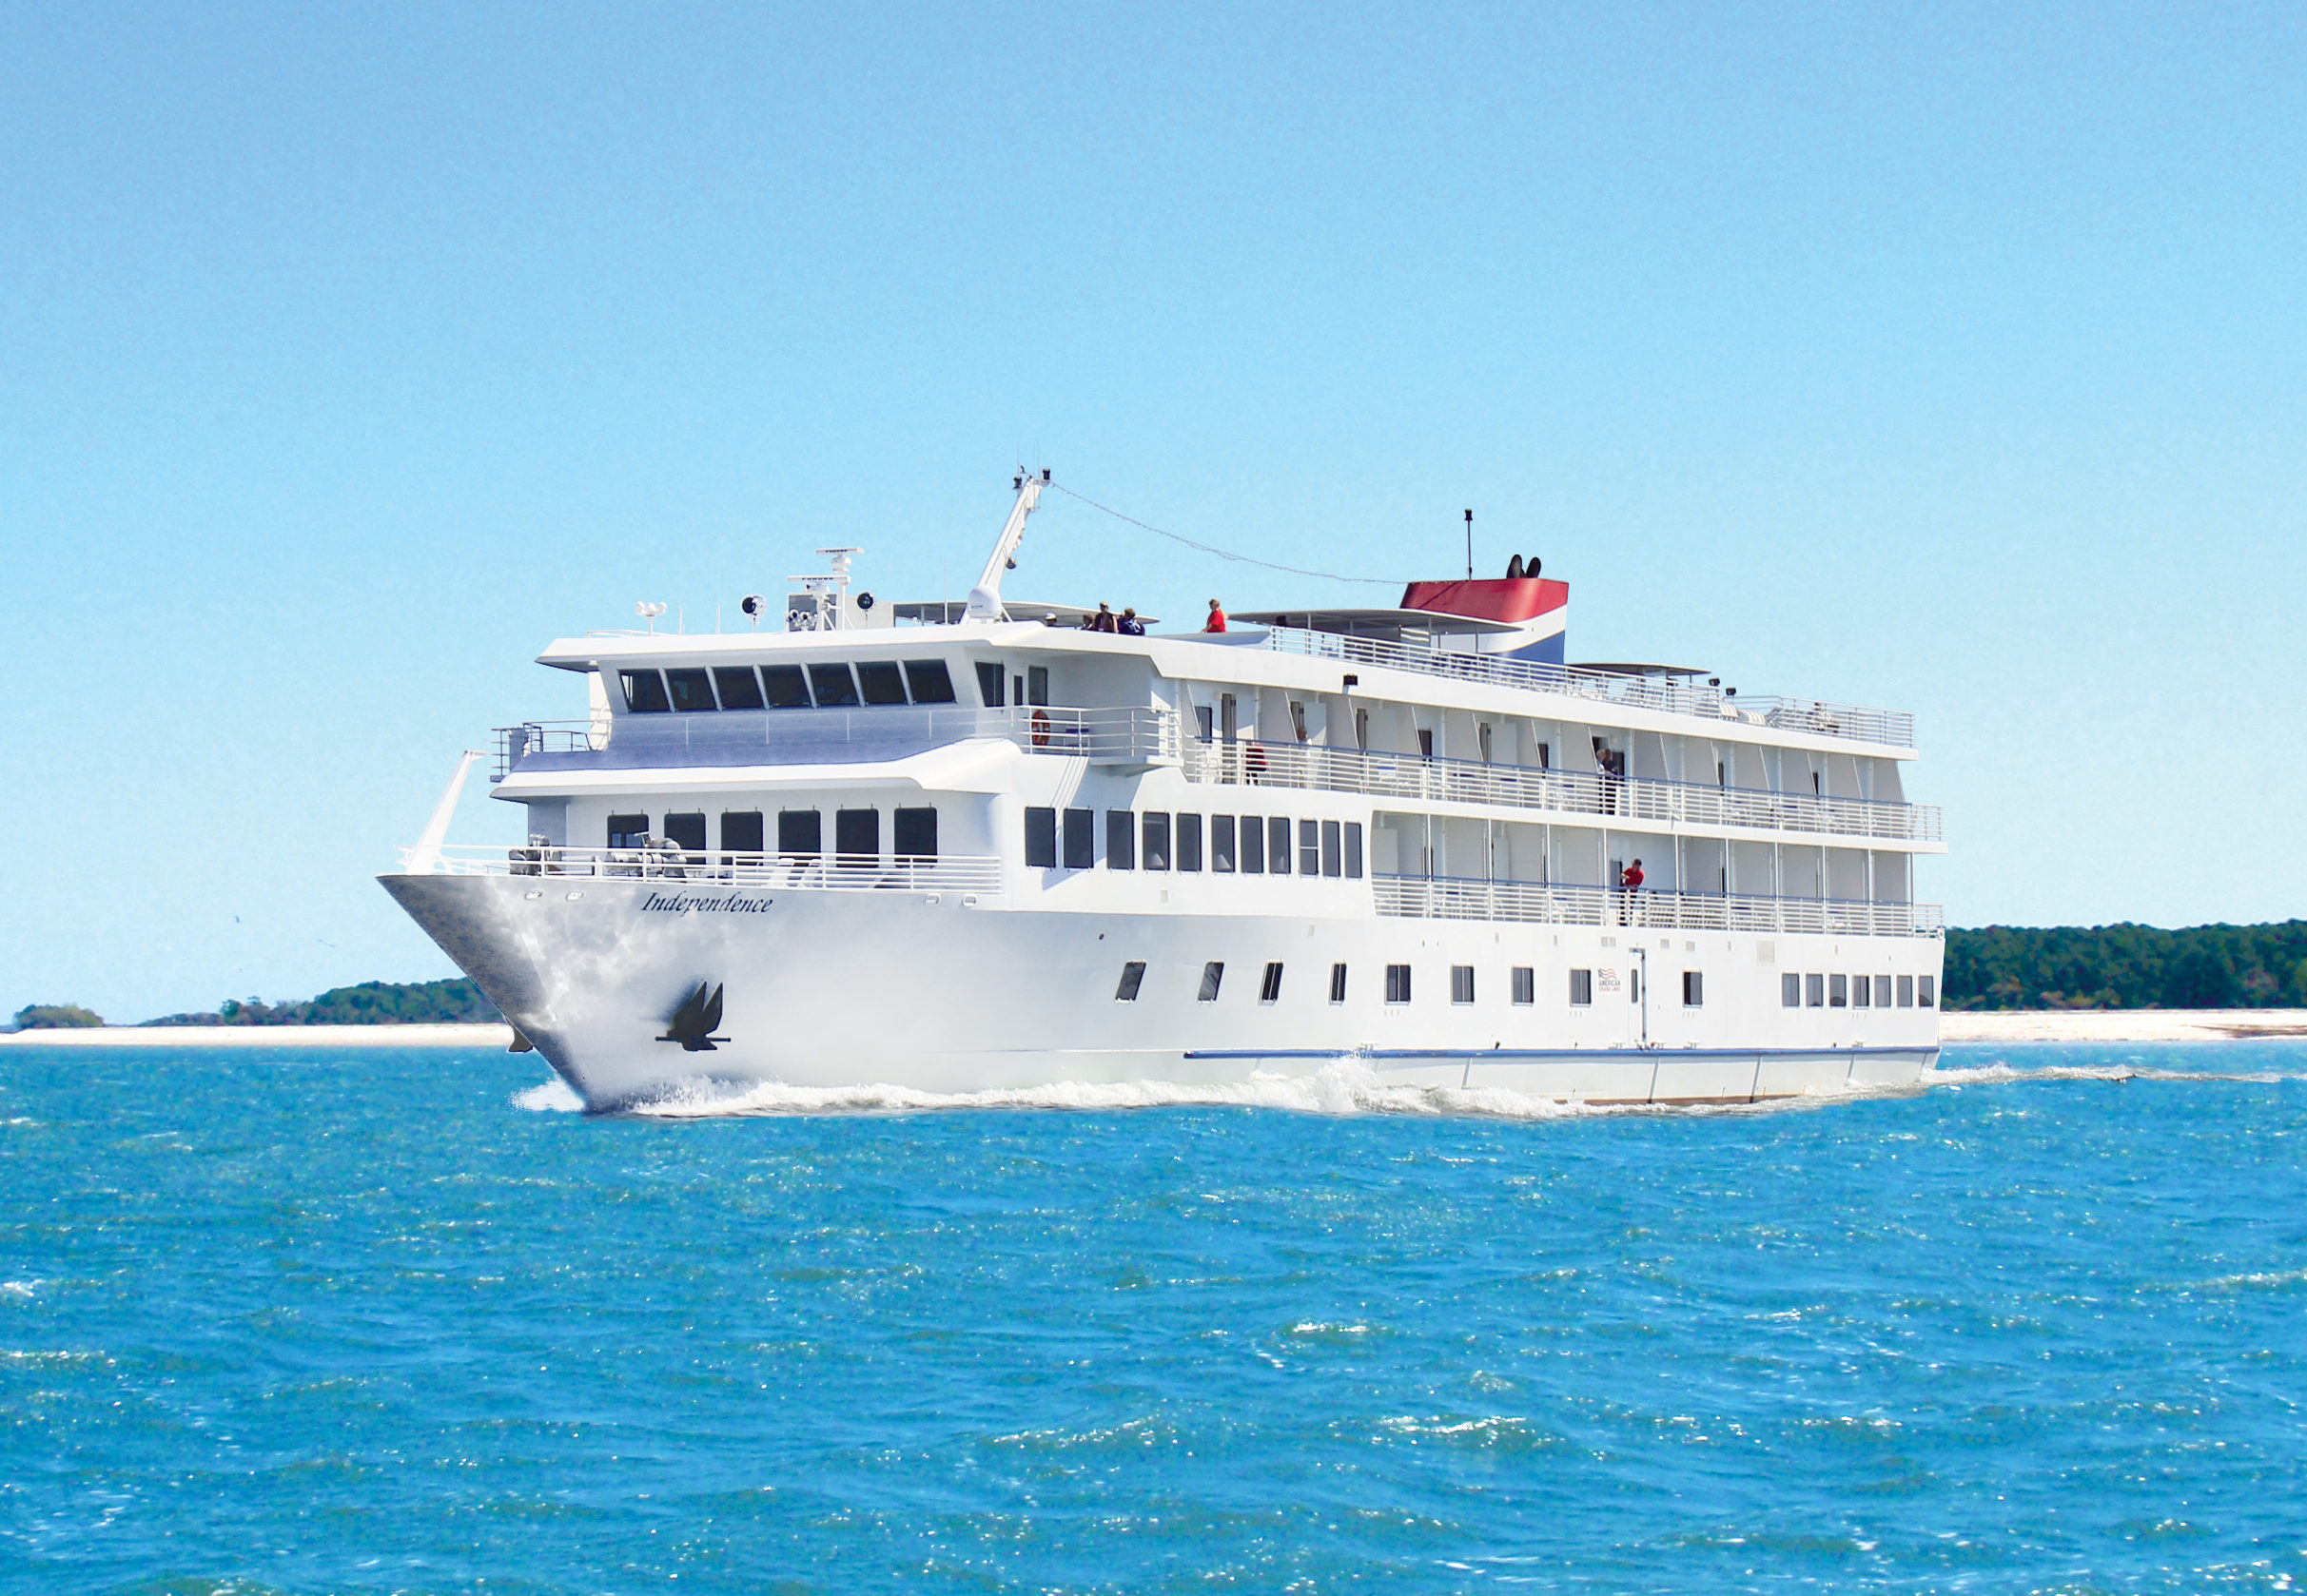 USA River Cruises Proud Partner With American Cruise Lines USA - Us flagged cruise ships